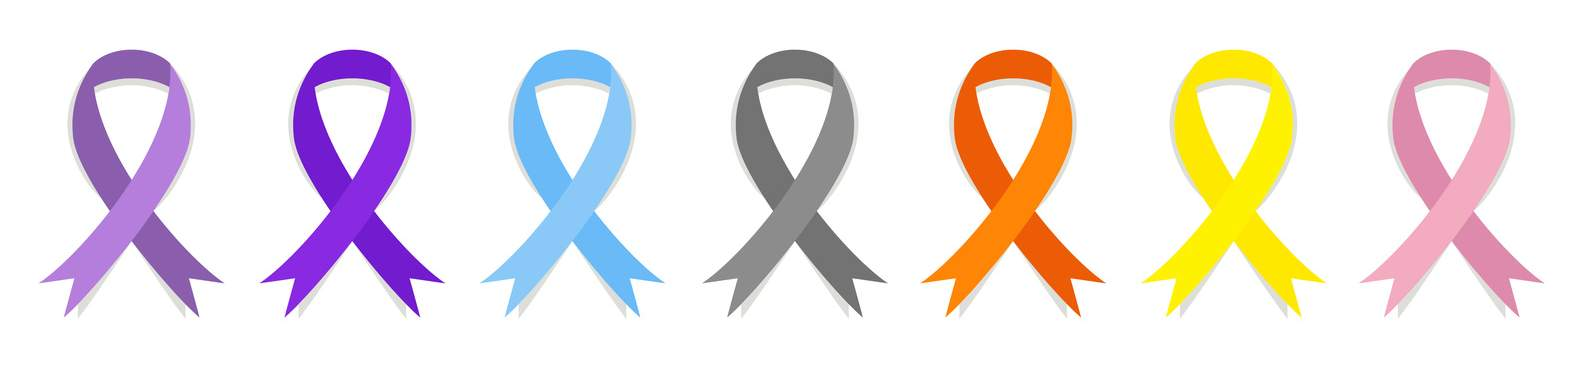 Cancer awareness ribbons, vector set collection